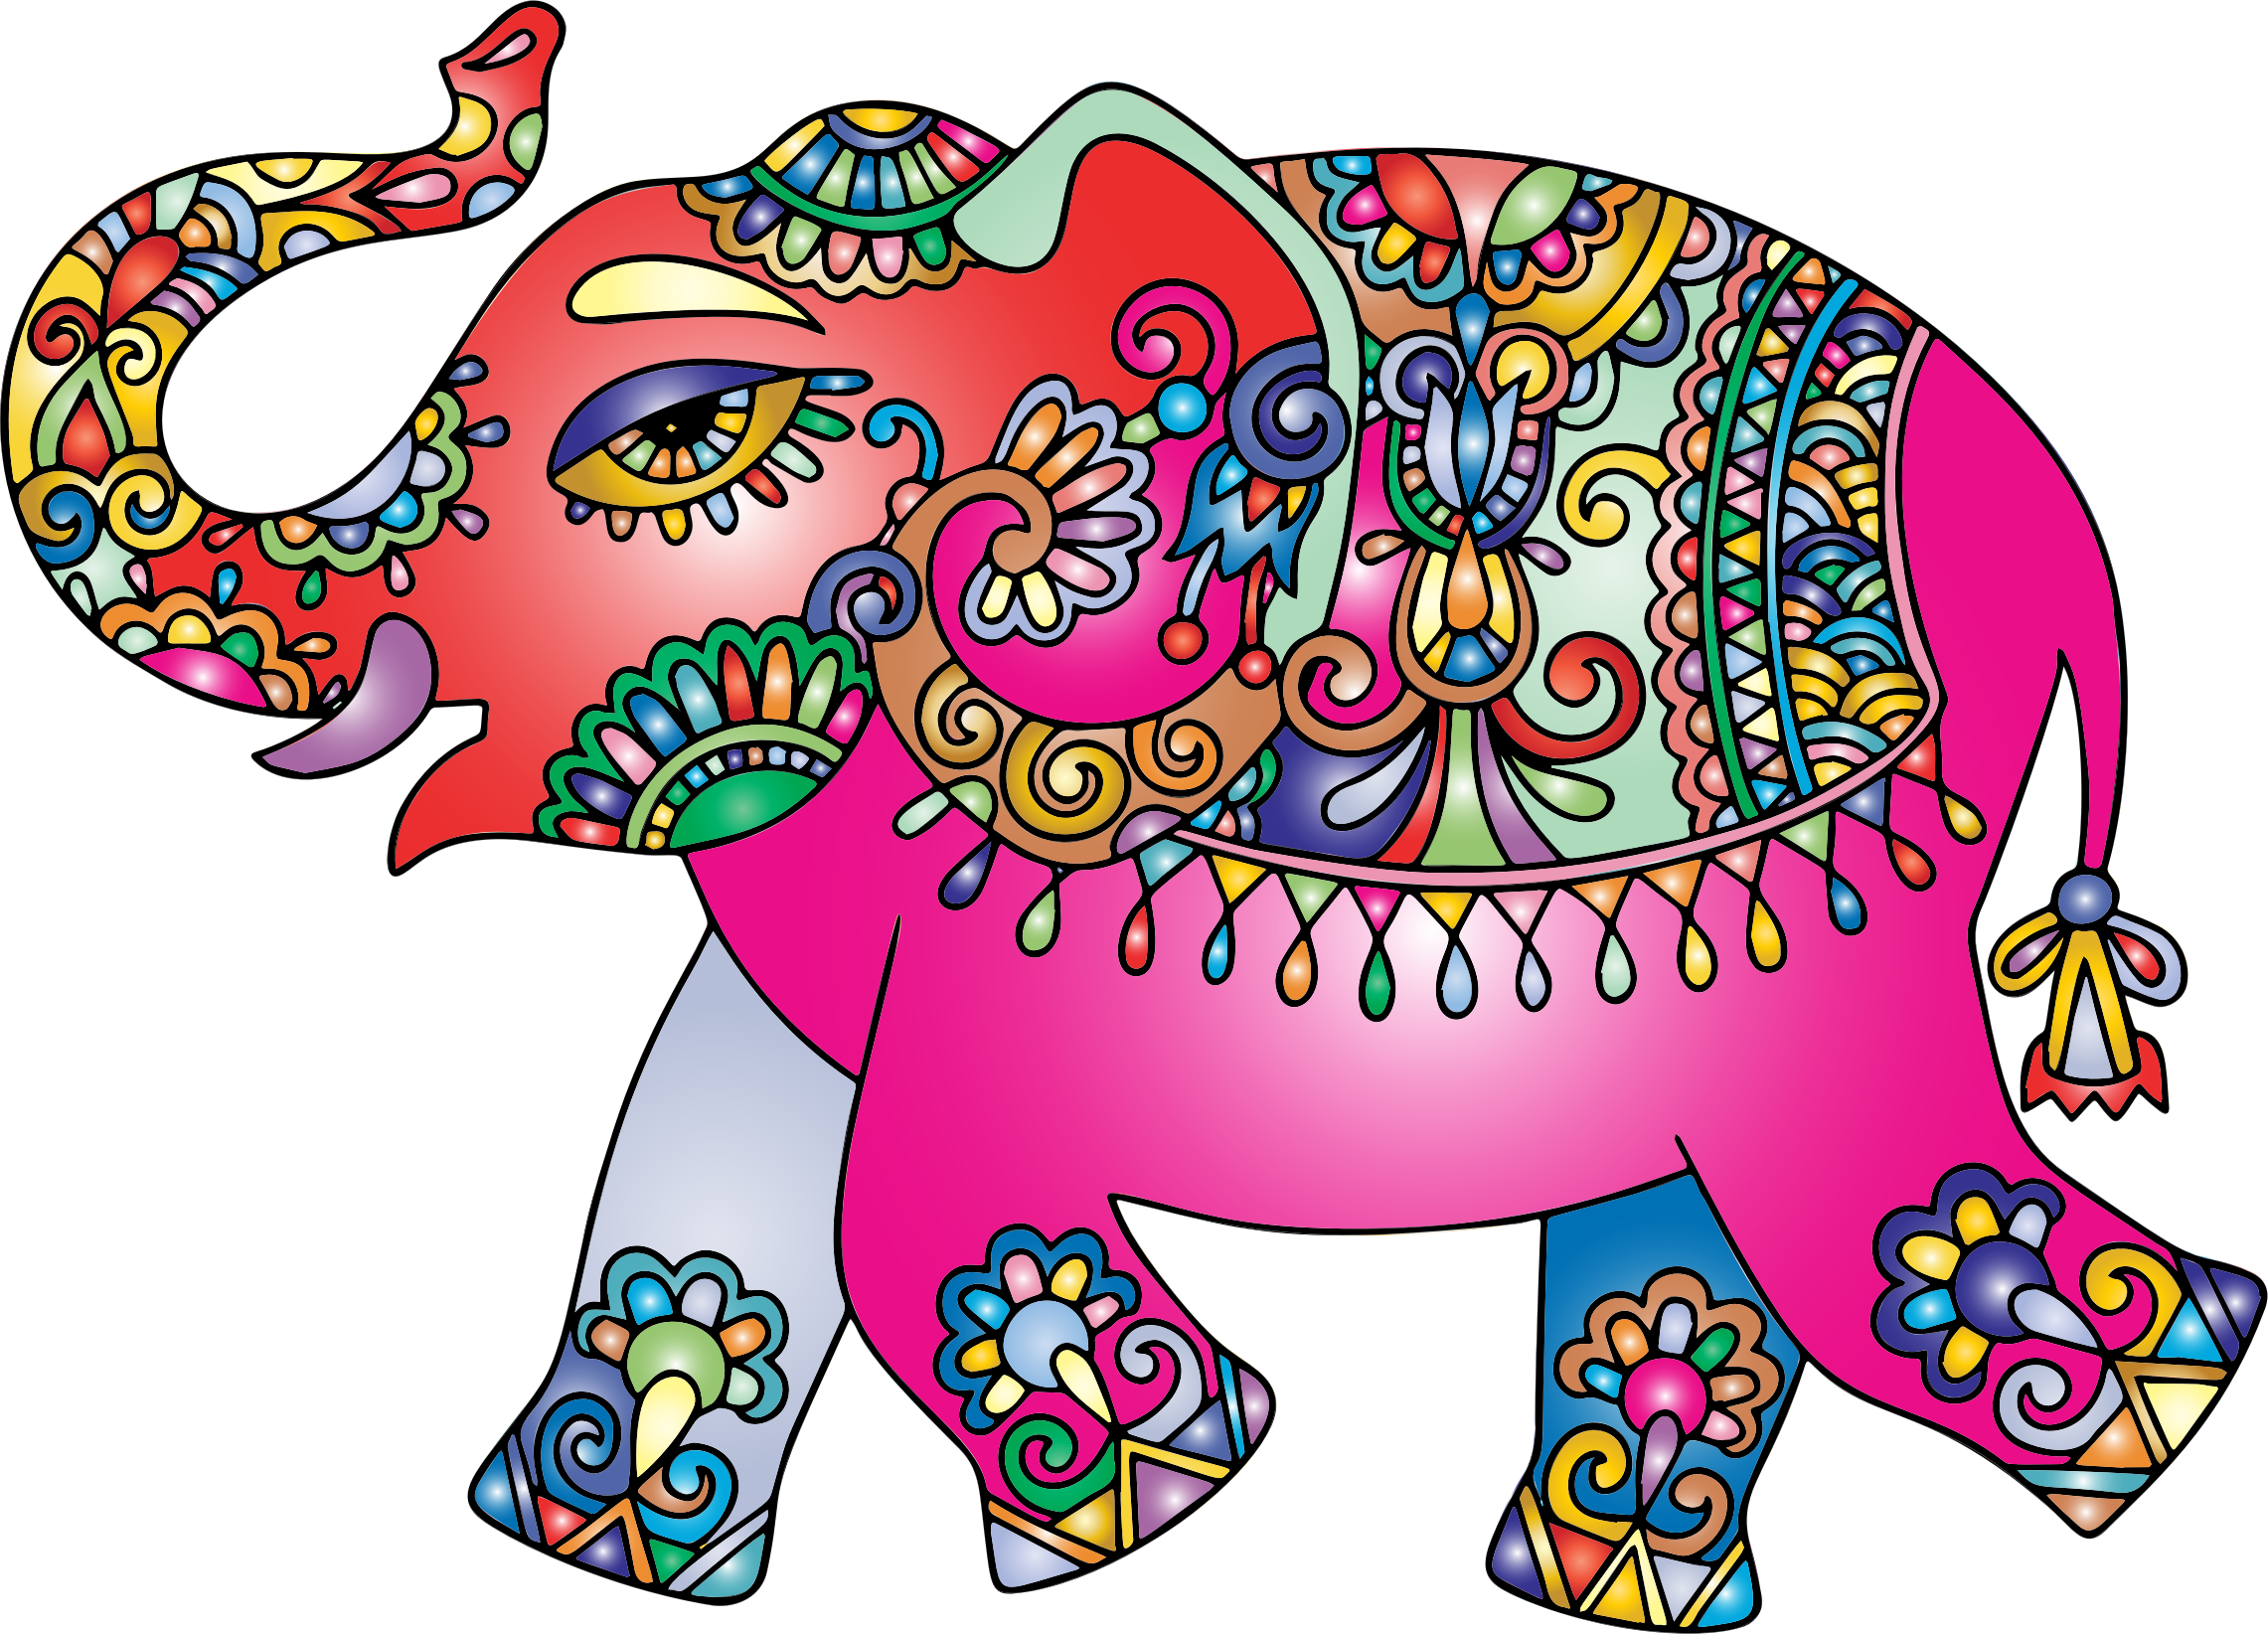 Elephant clipart rainbow. Prismatic playful big image